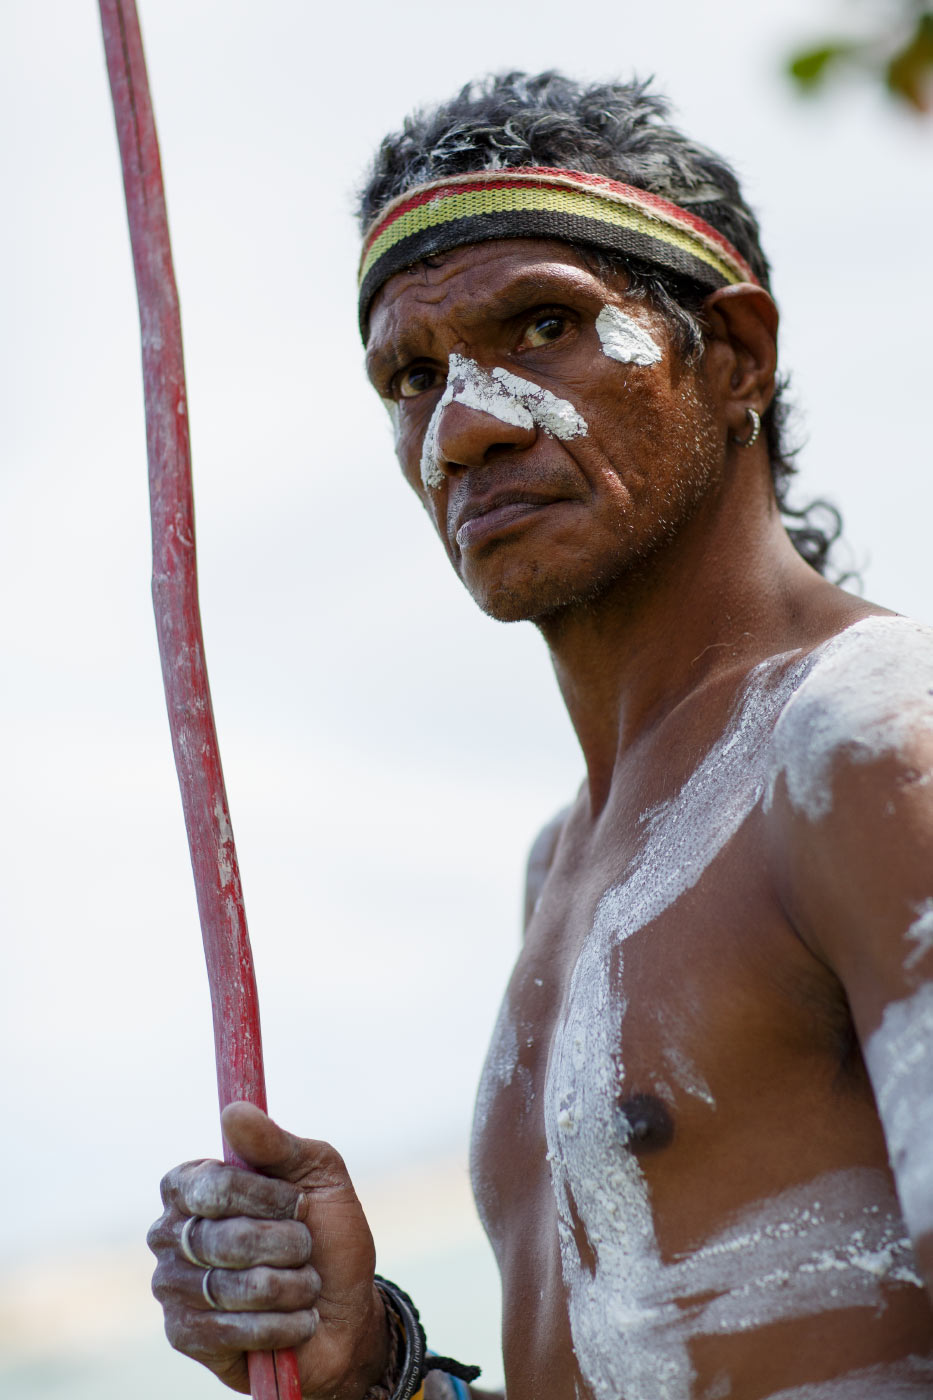 Colour photo of a man holding a spear and wearing body paint as part of an outdoor festival. - click to view larger image